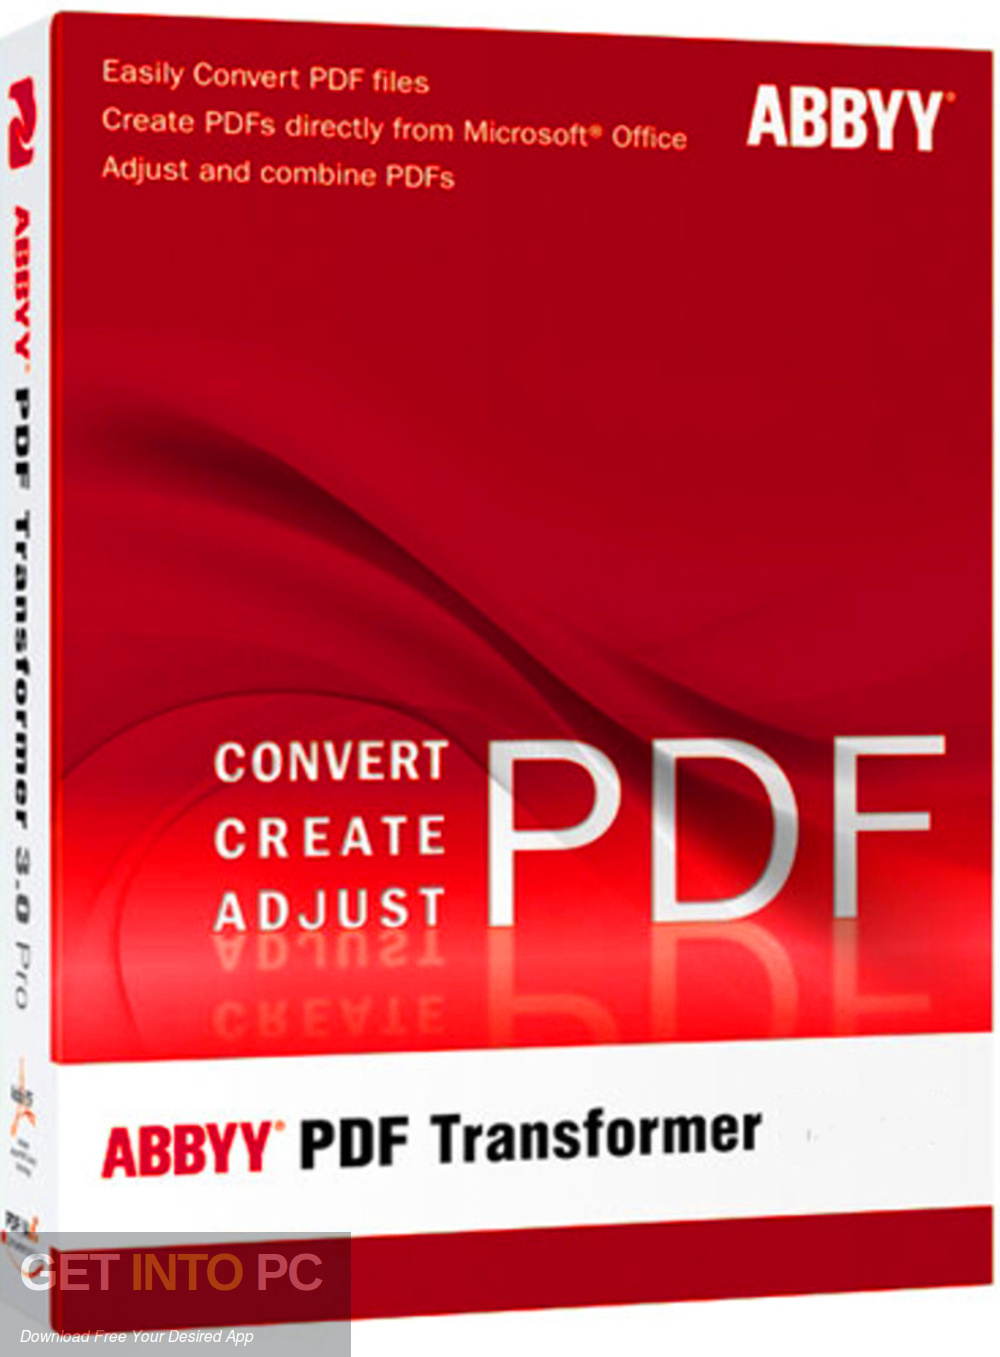 ABBYY PDF Transformer Free Download-GetintoPC.com